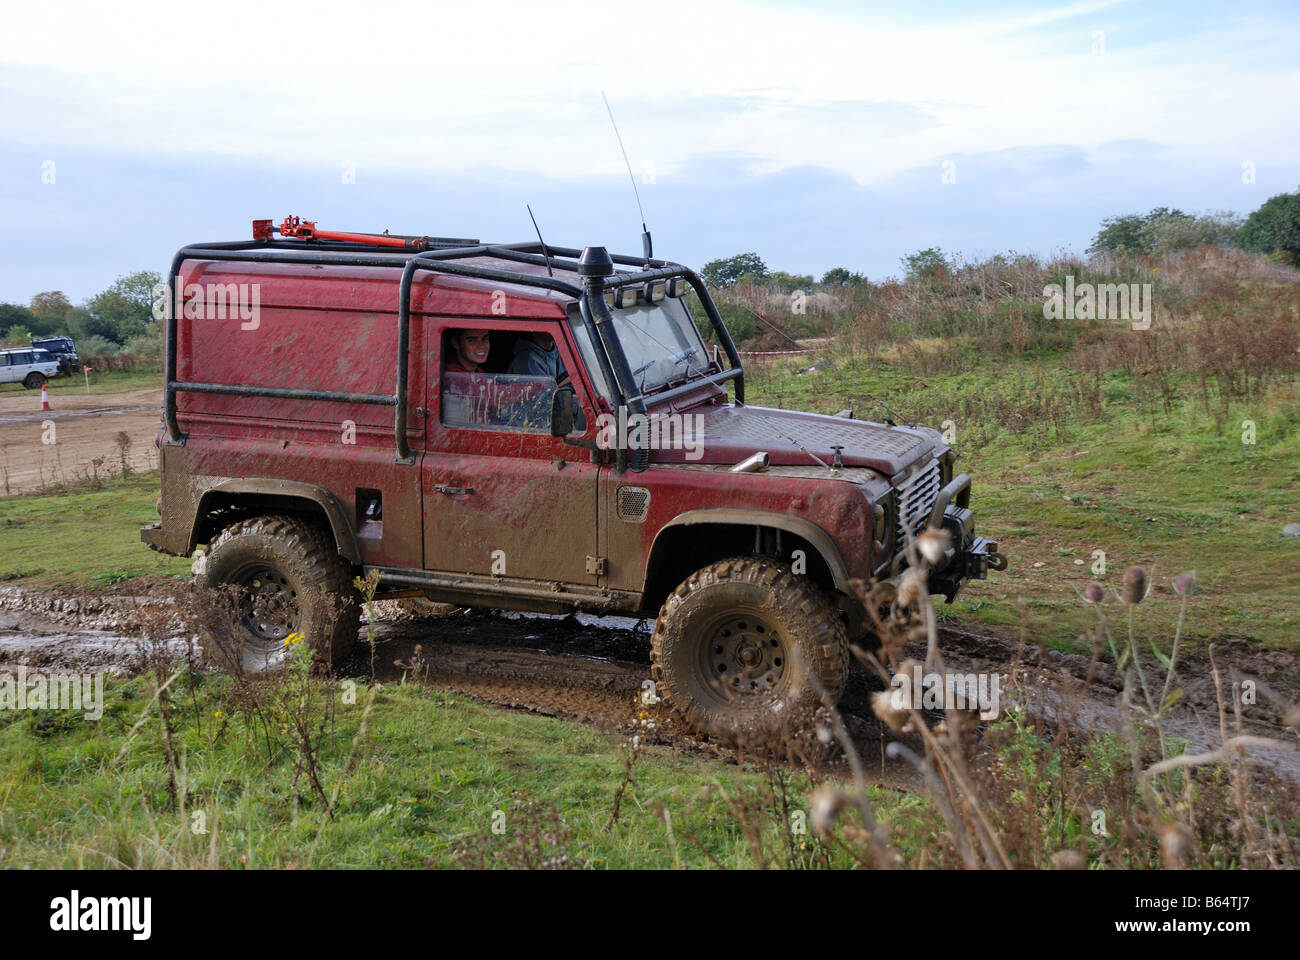 Image Gallery Defender 90 Mud